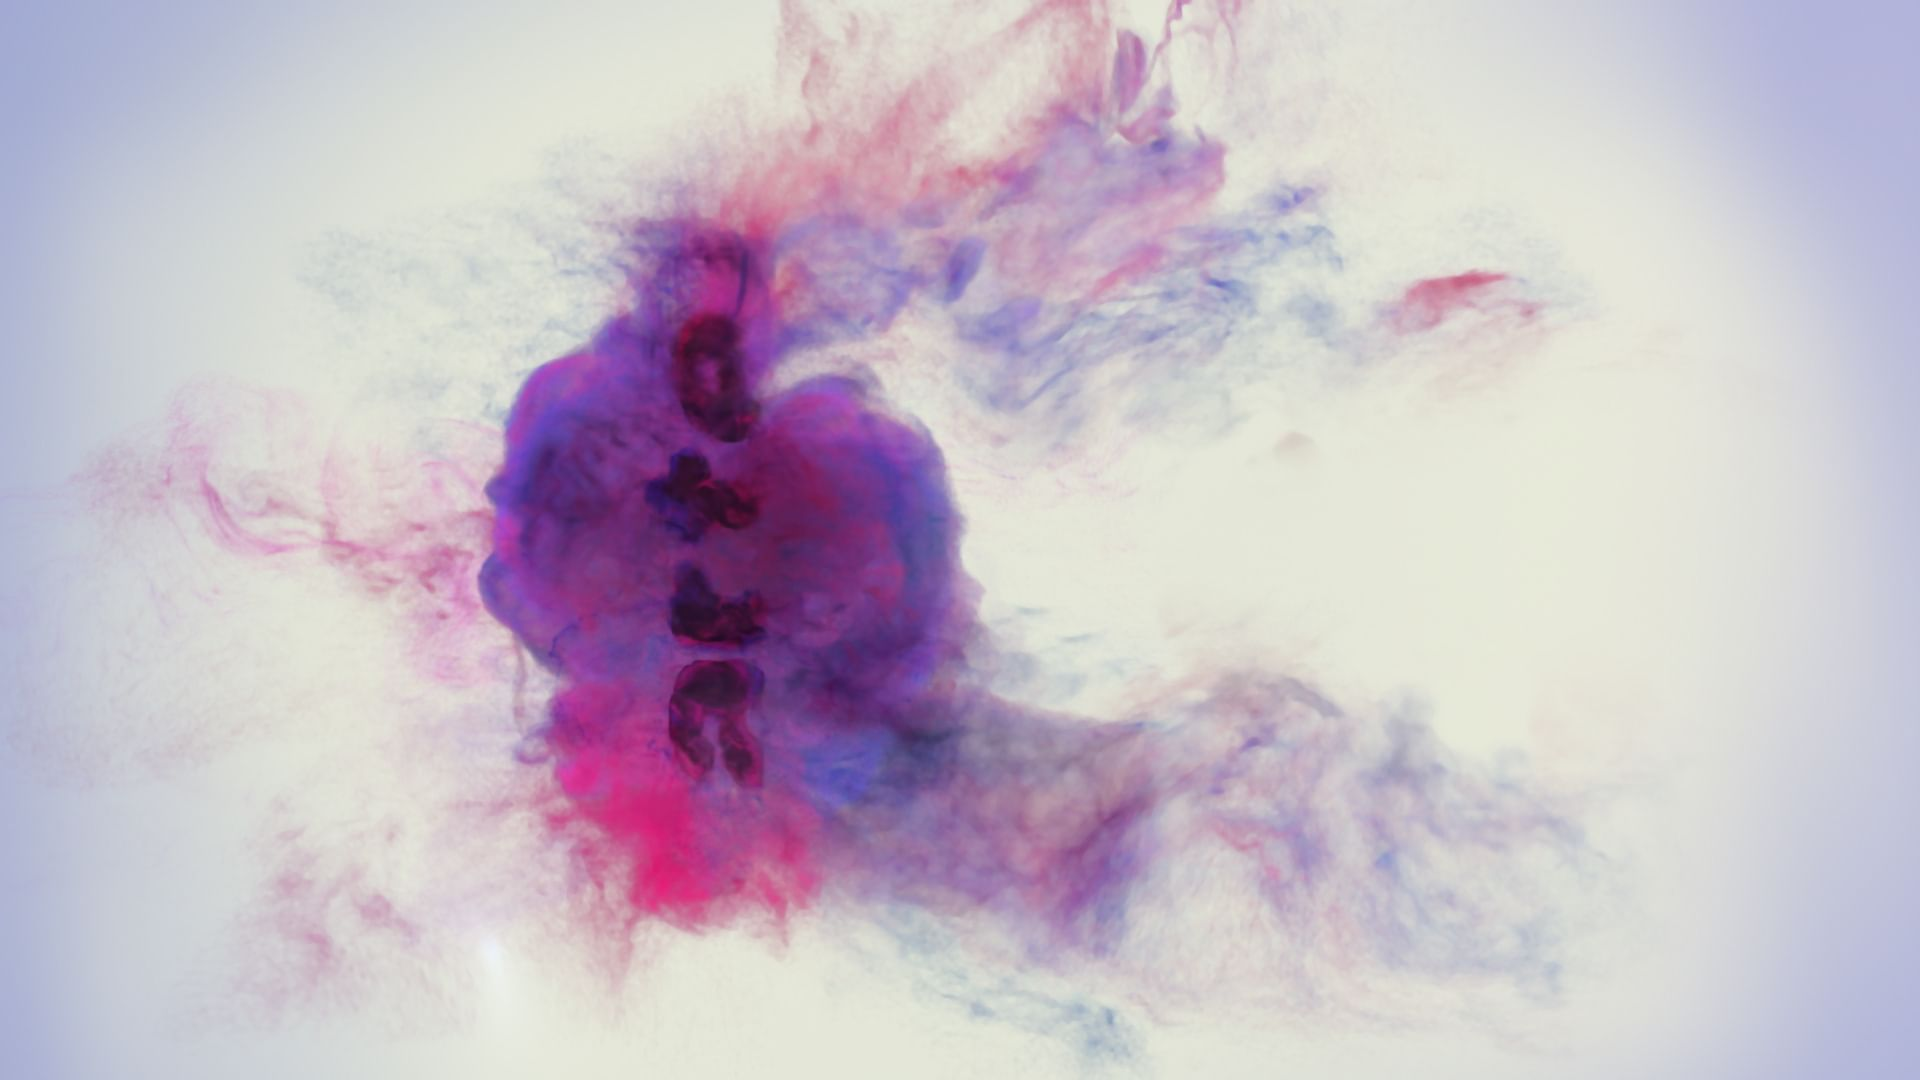 Mexico: Justice for the Disappeared